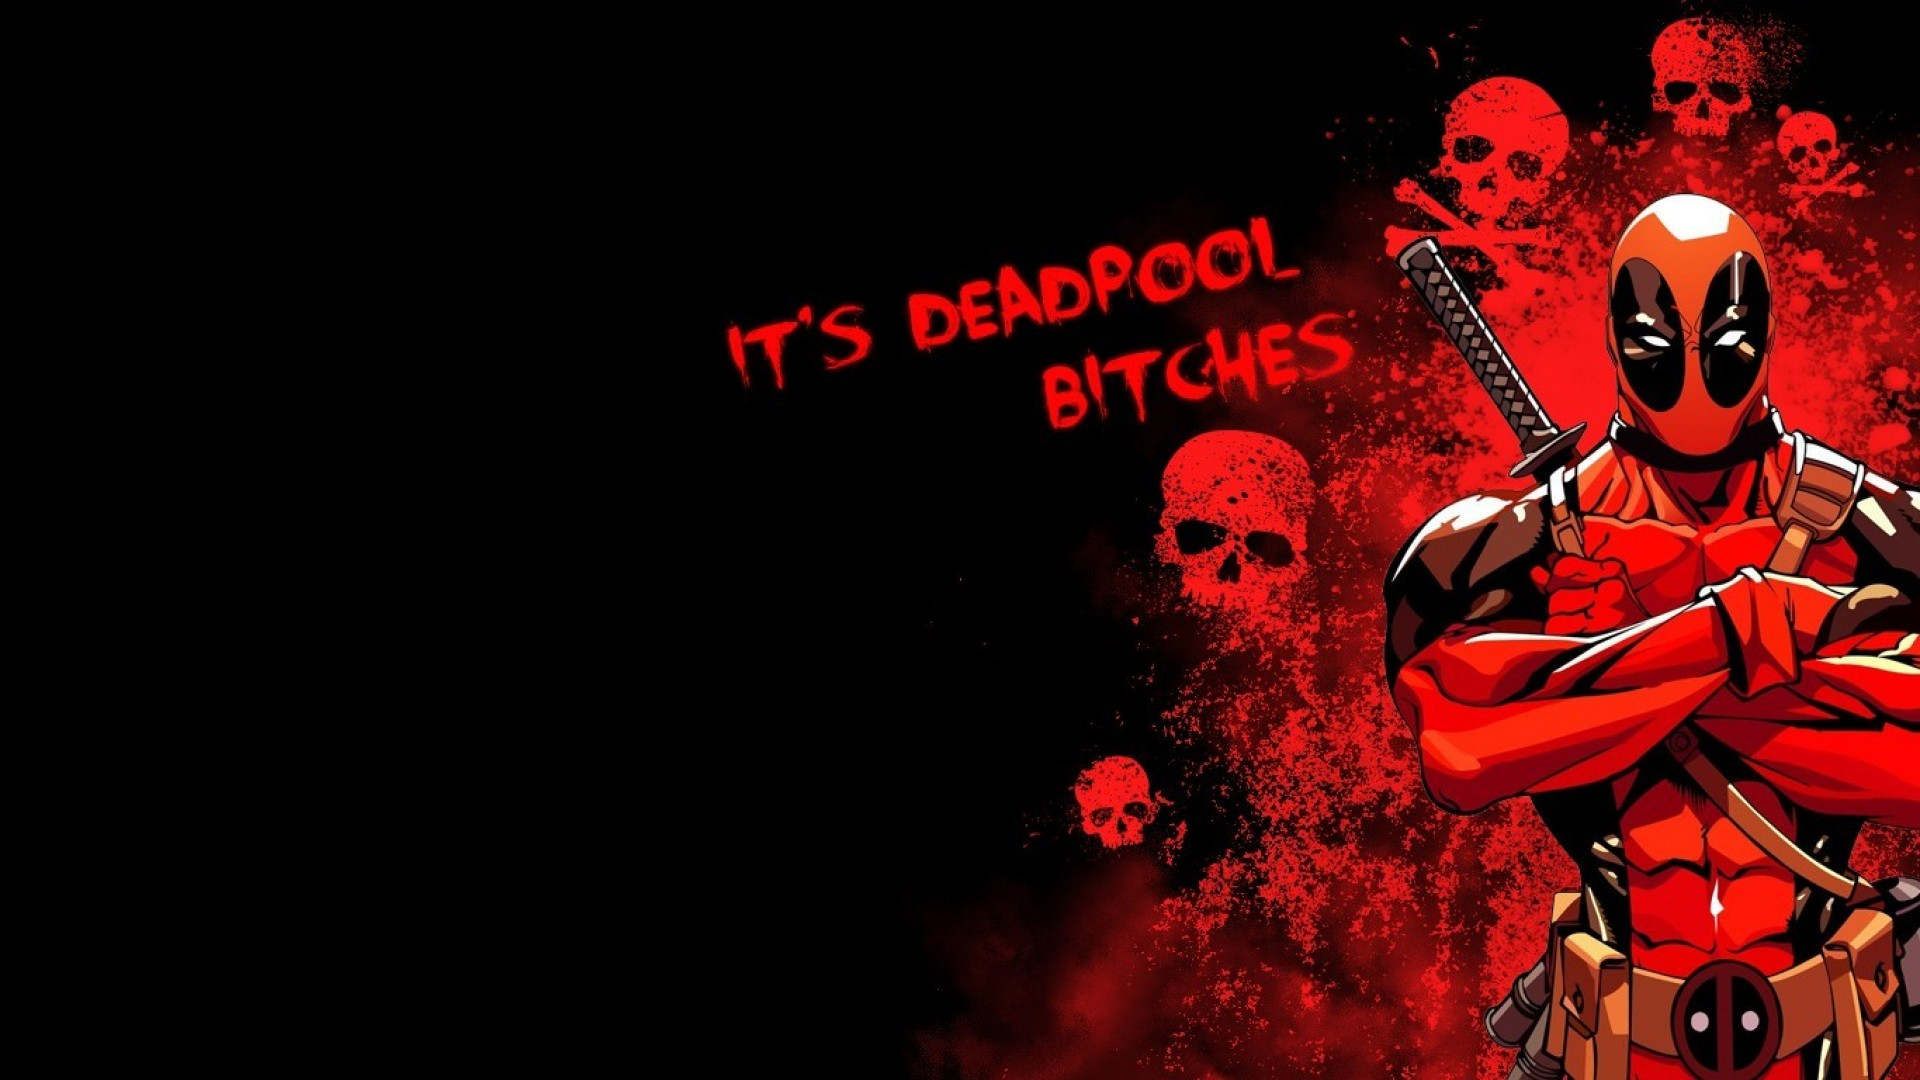 Deadpool Wallpaper   HD Wallpapers Backgrounds of Your Choice 1920x1080